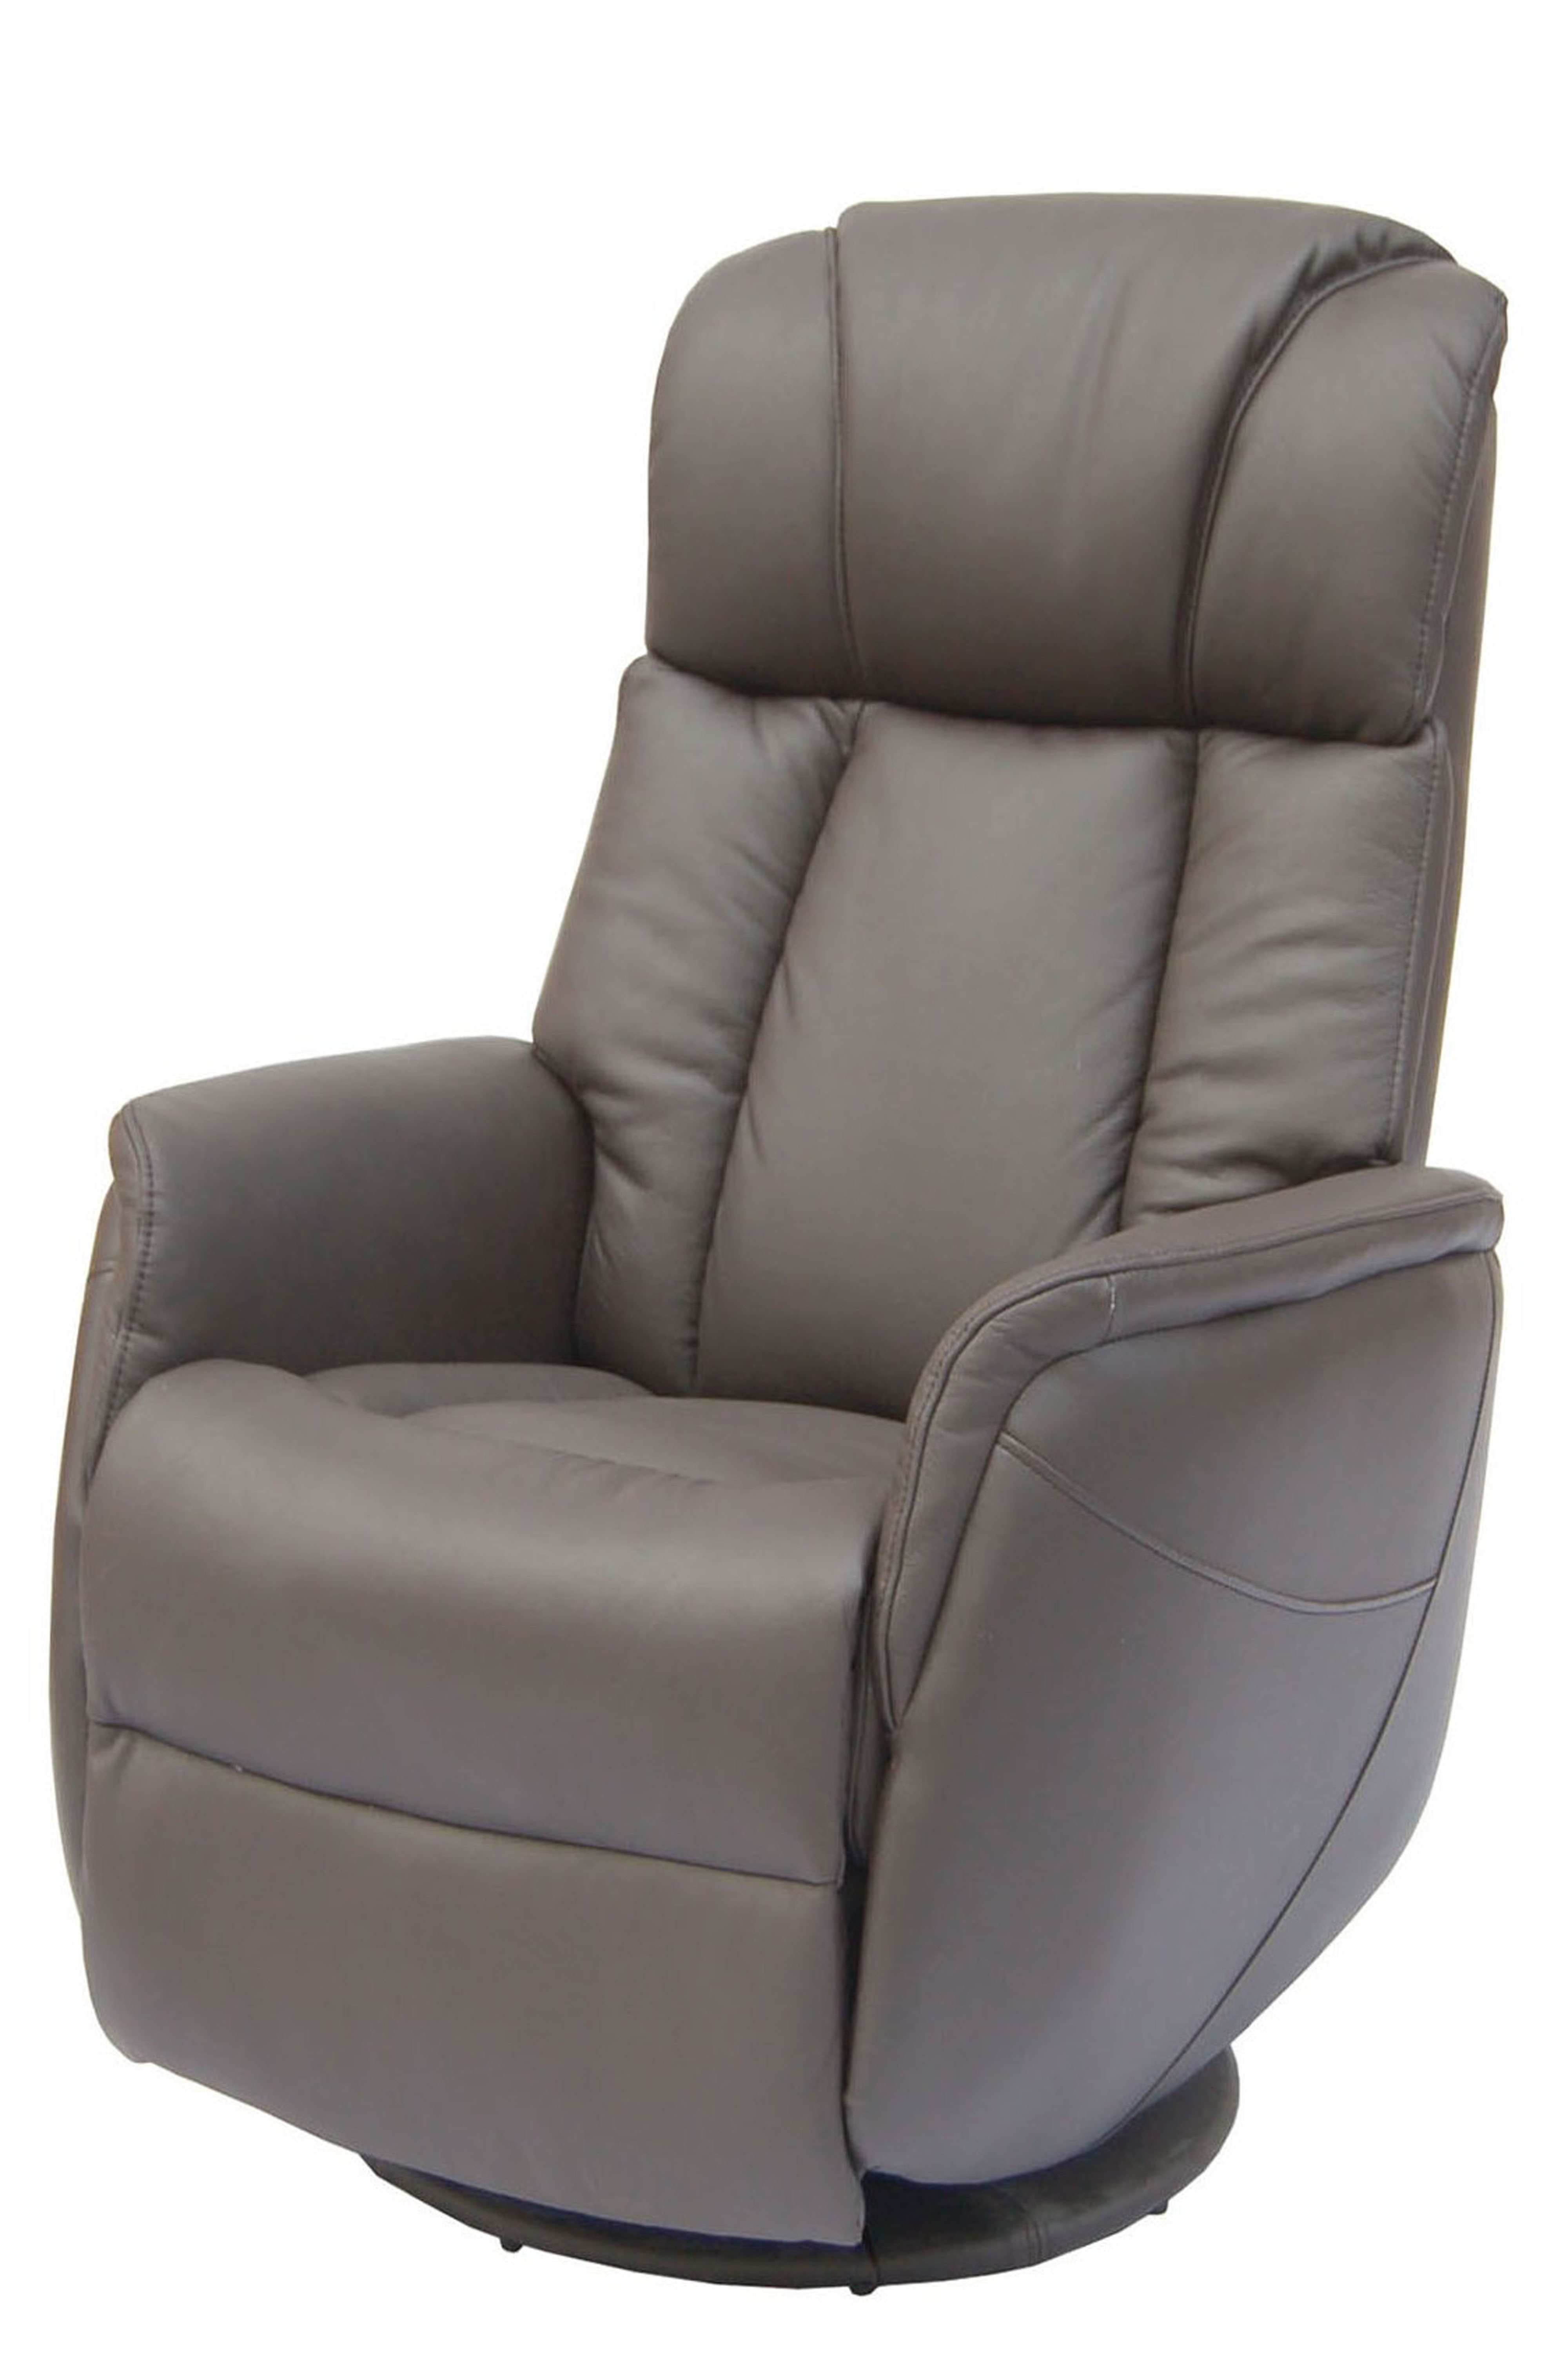 Trendy Espresso Leather Swivel Chairs In Gfa Sorrento Electric Rock & Swivel Leather Recliner Chair – Espresso (View 17 of 20)